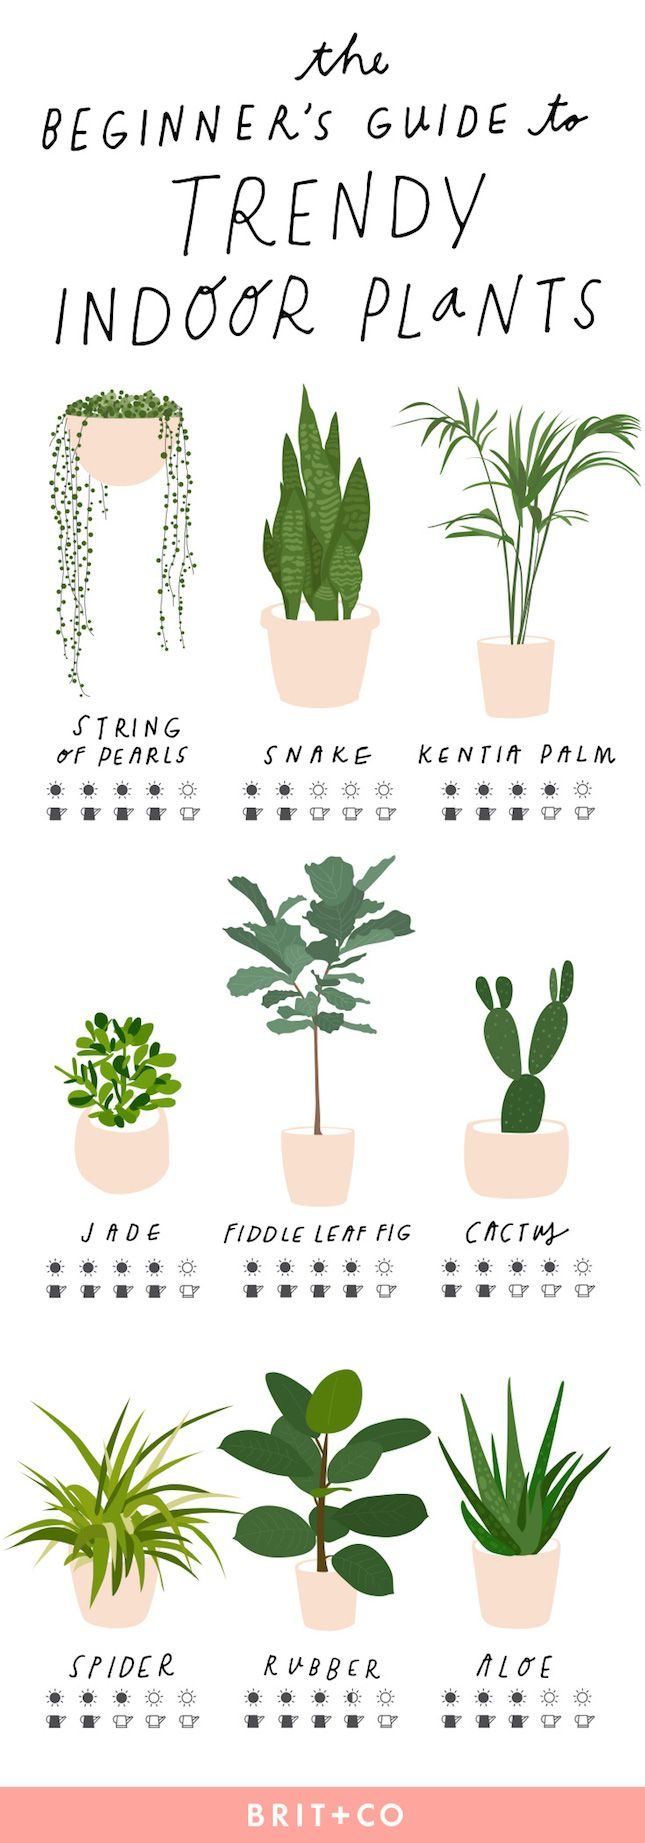 Best 25+ House plants ideas on Pinterest | Plants indoor, Indoor ...